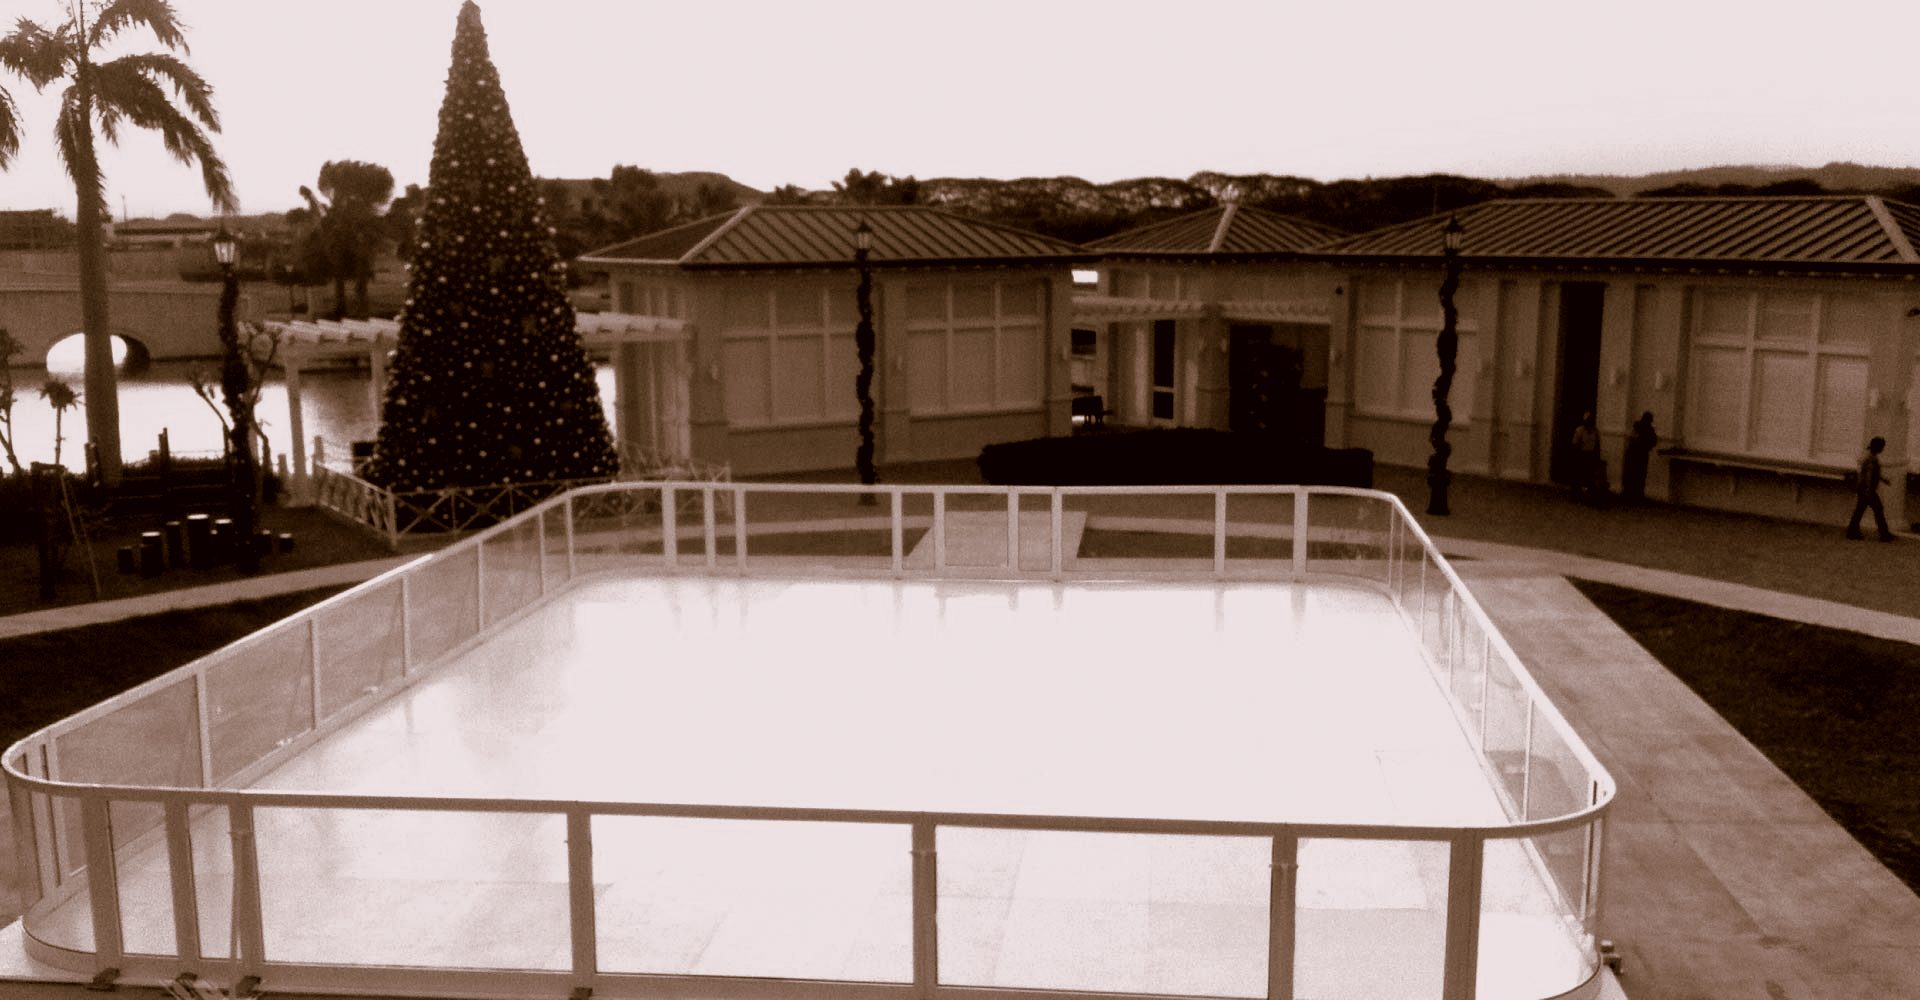 Ice Skating Setup in India